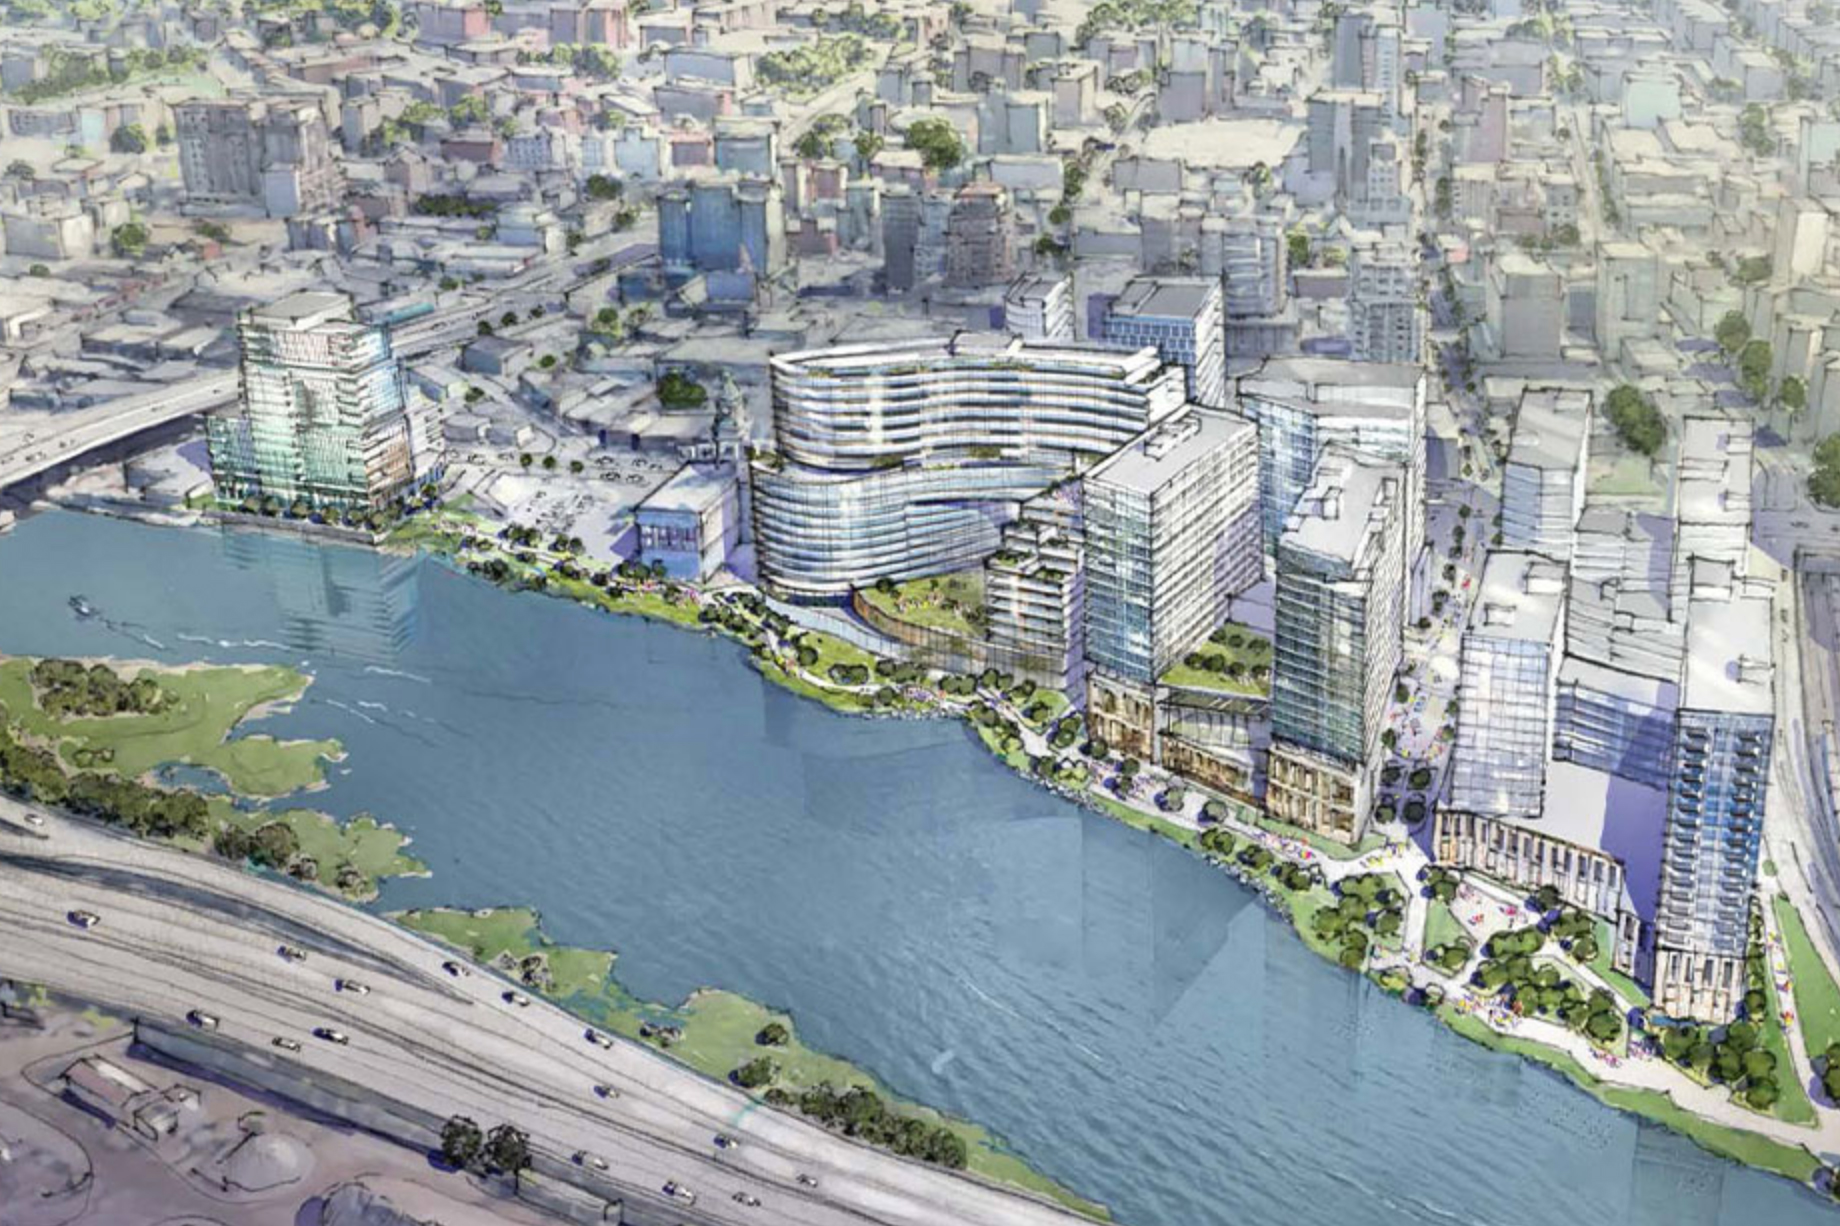 An illustration of the city's proposed Flushing Waterfront Revitalization project.